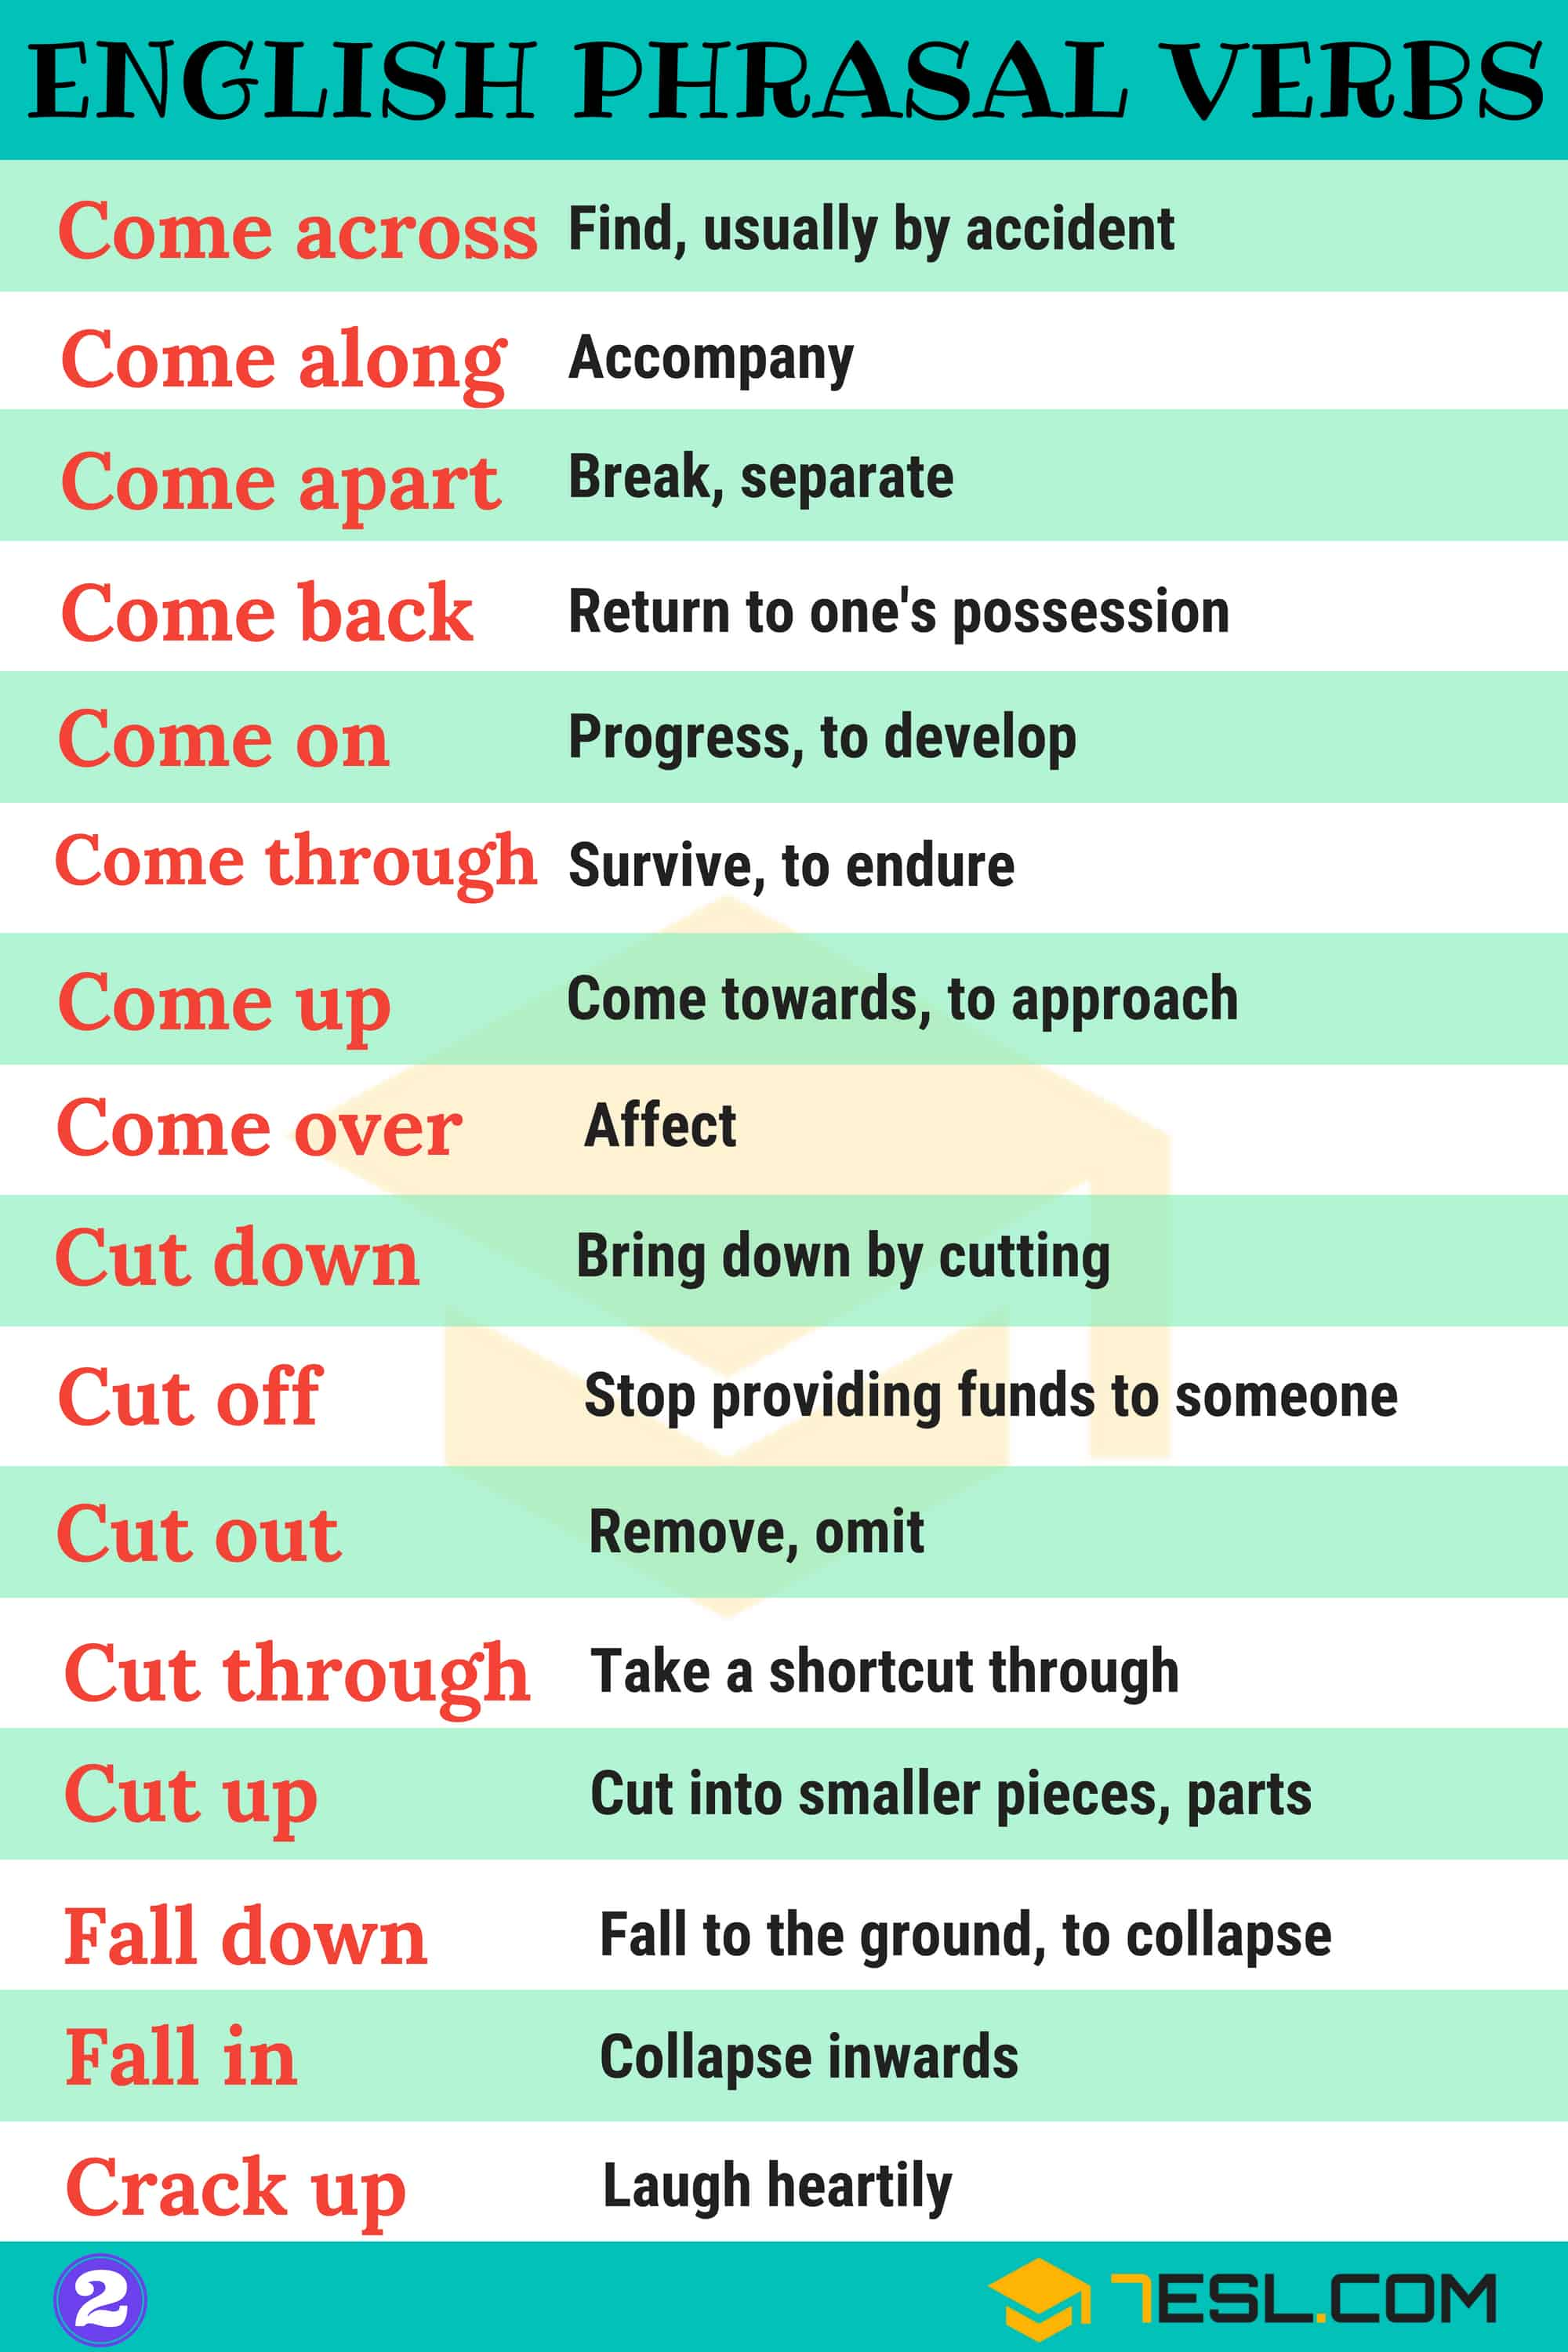 Common English Phrasal Verbs List | Image 2